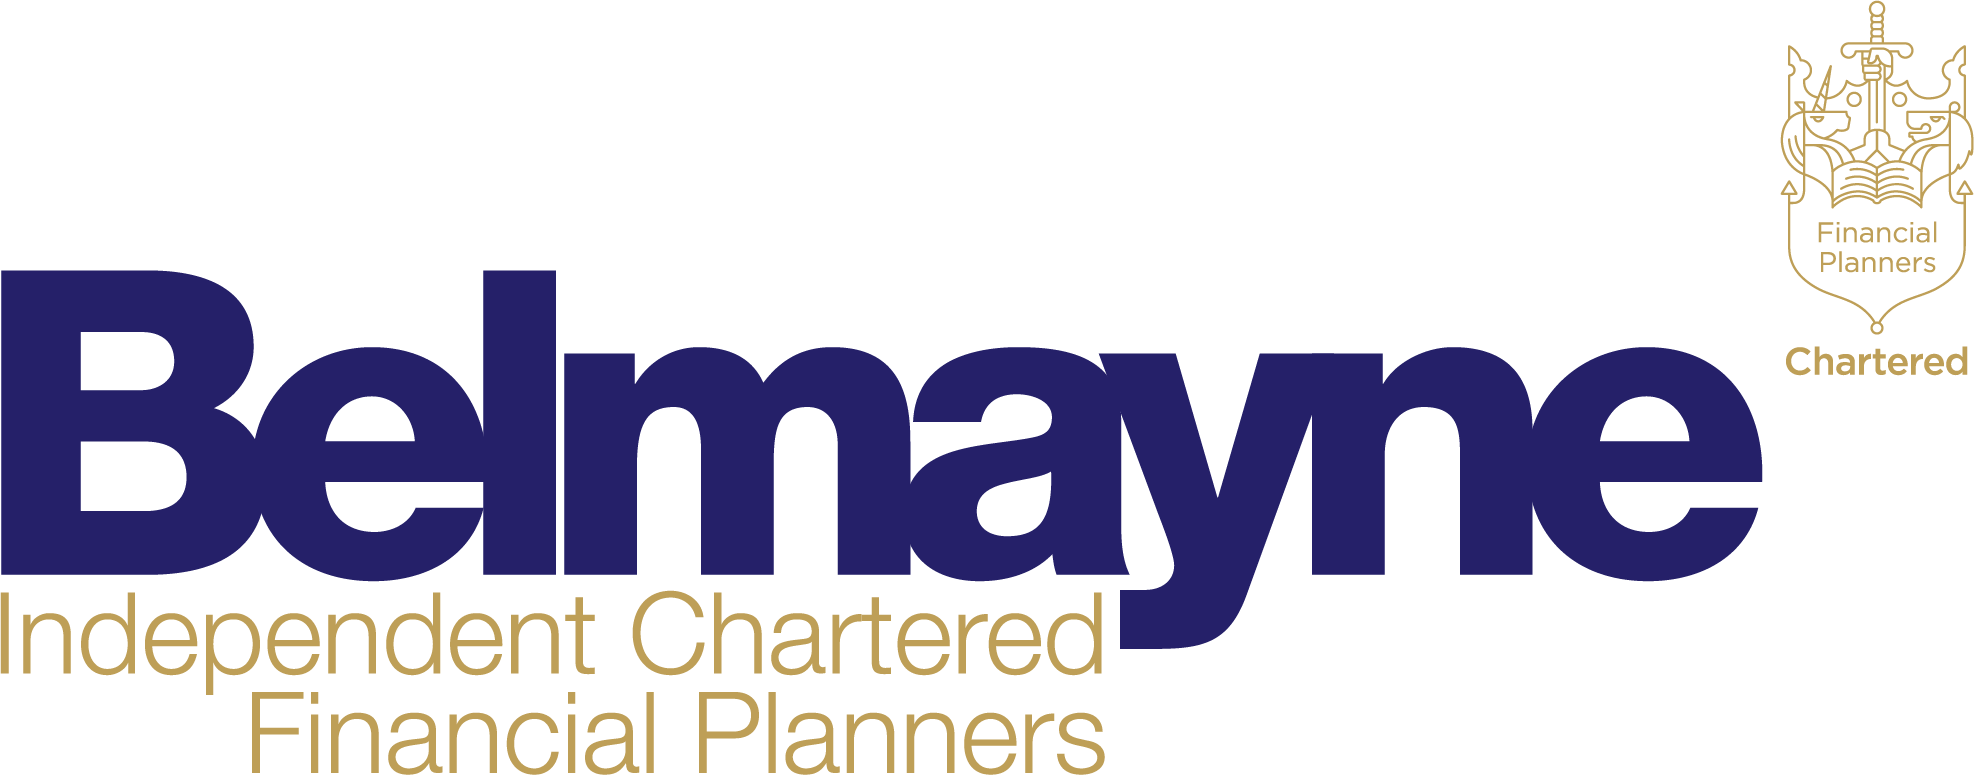 Belmayne Independent Chartered Financial Planners LLP